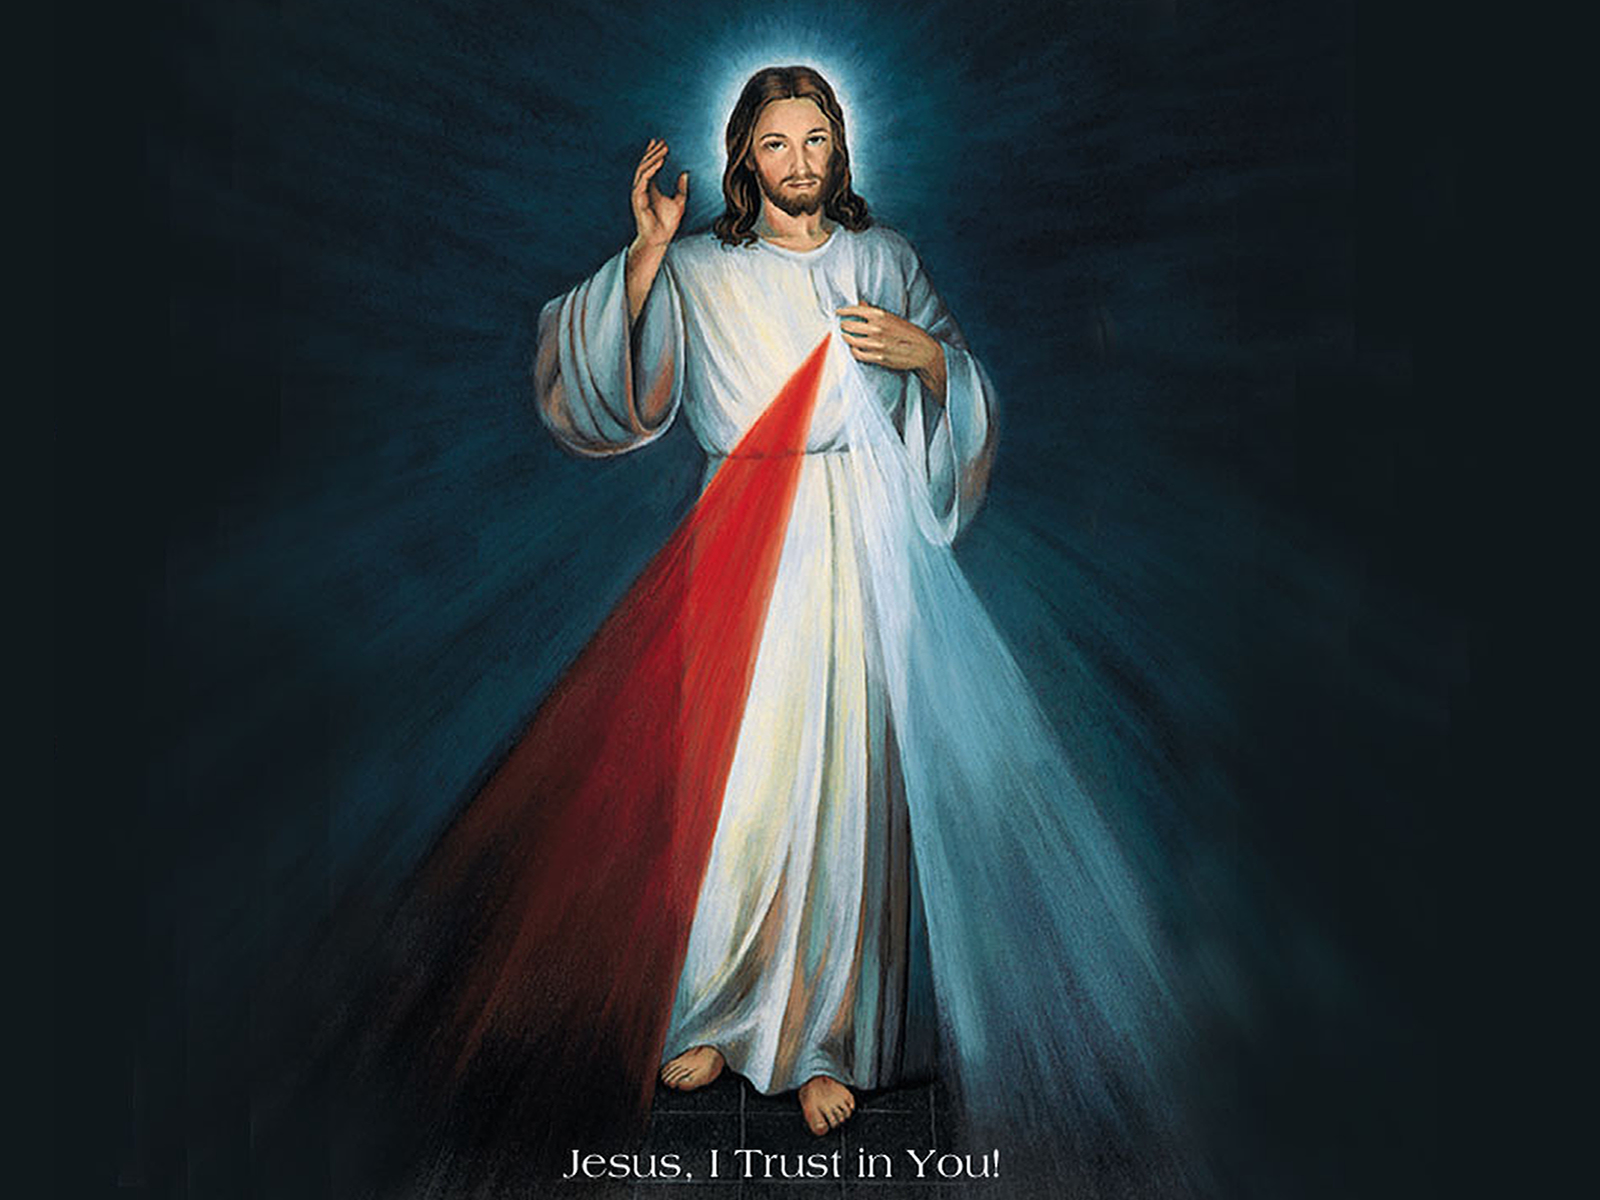 extras | the divine mercy message from the marians of the